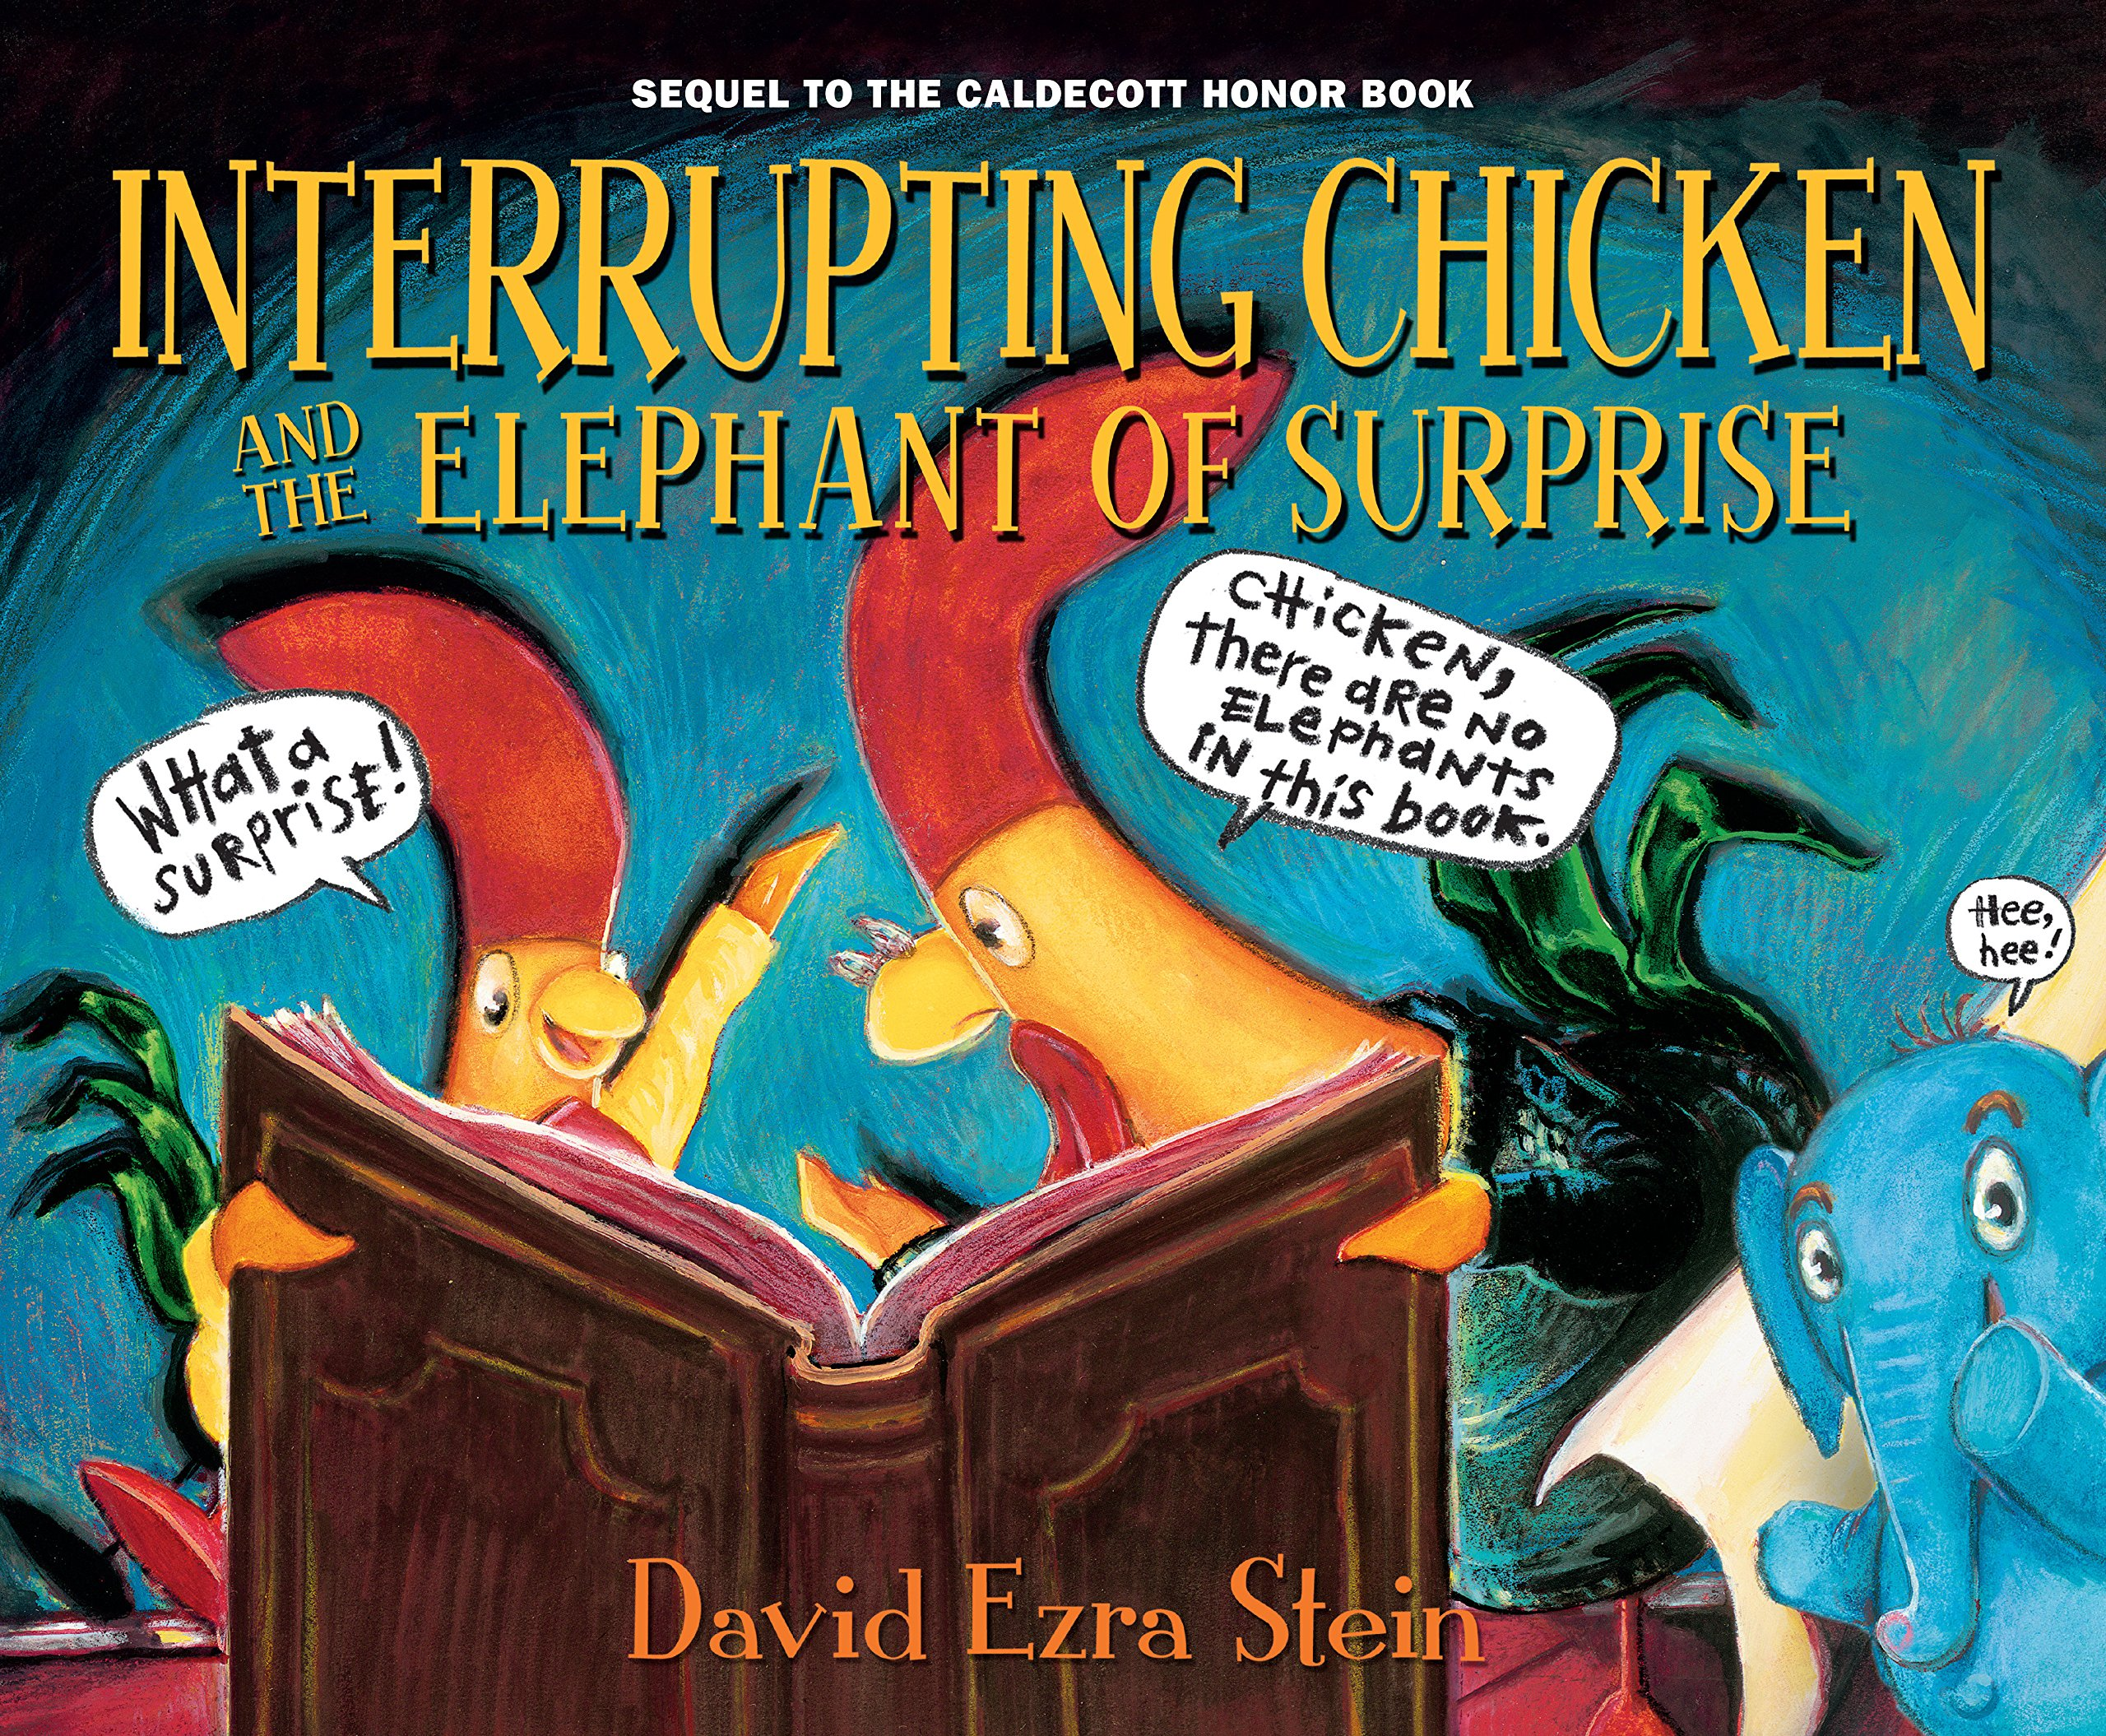 Interrupting Chicken: Elephant of Surprise